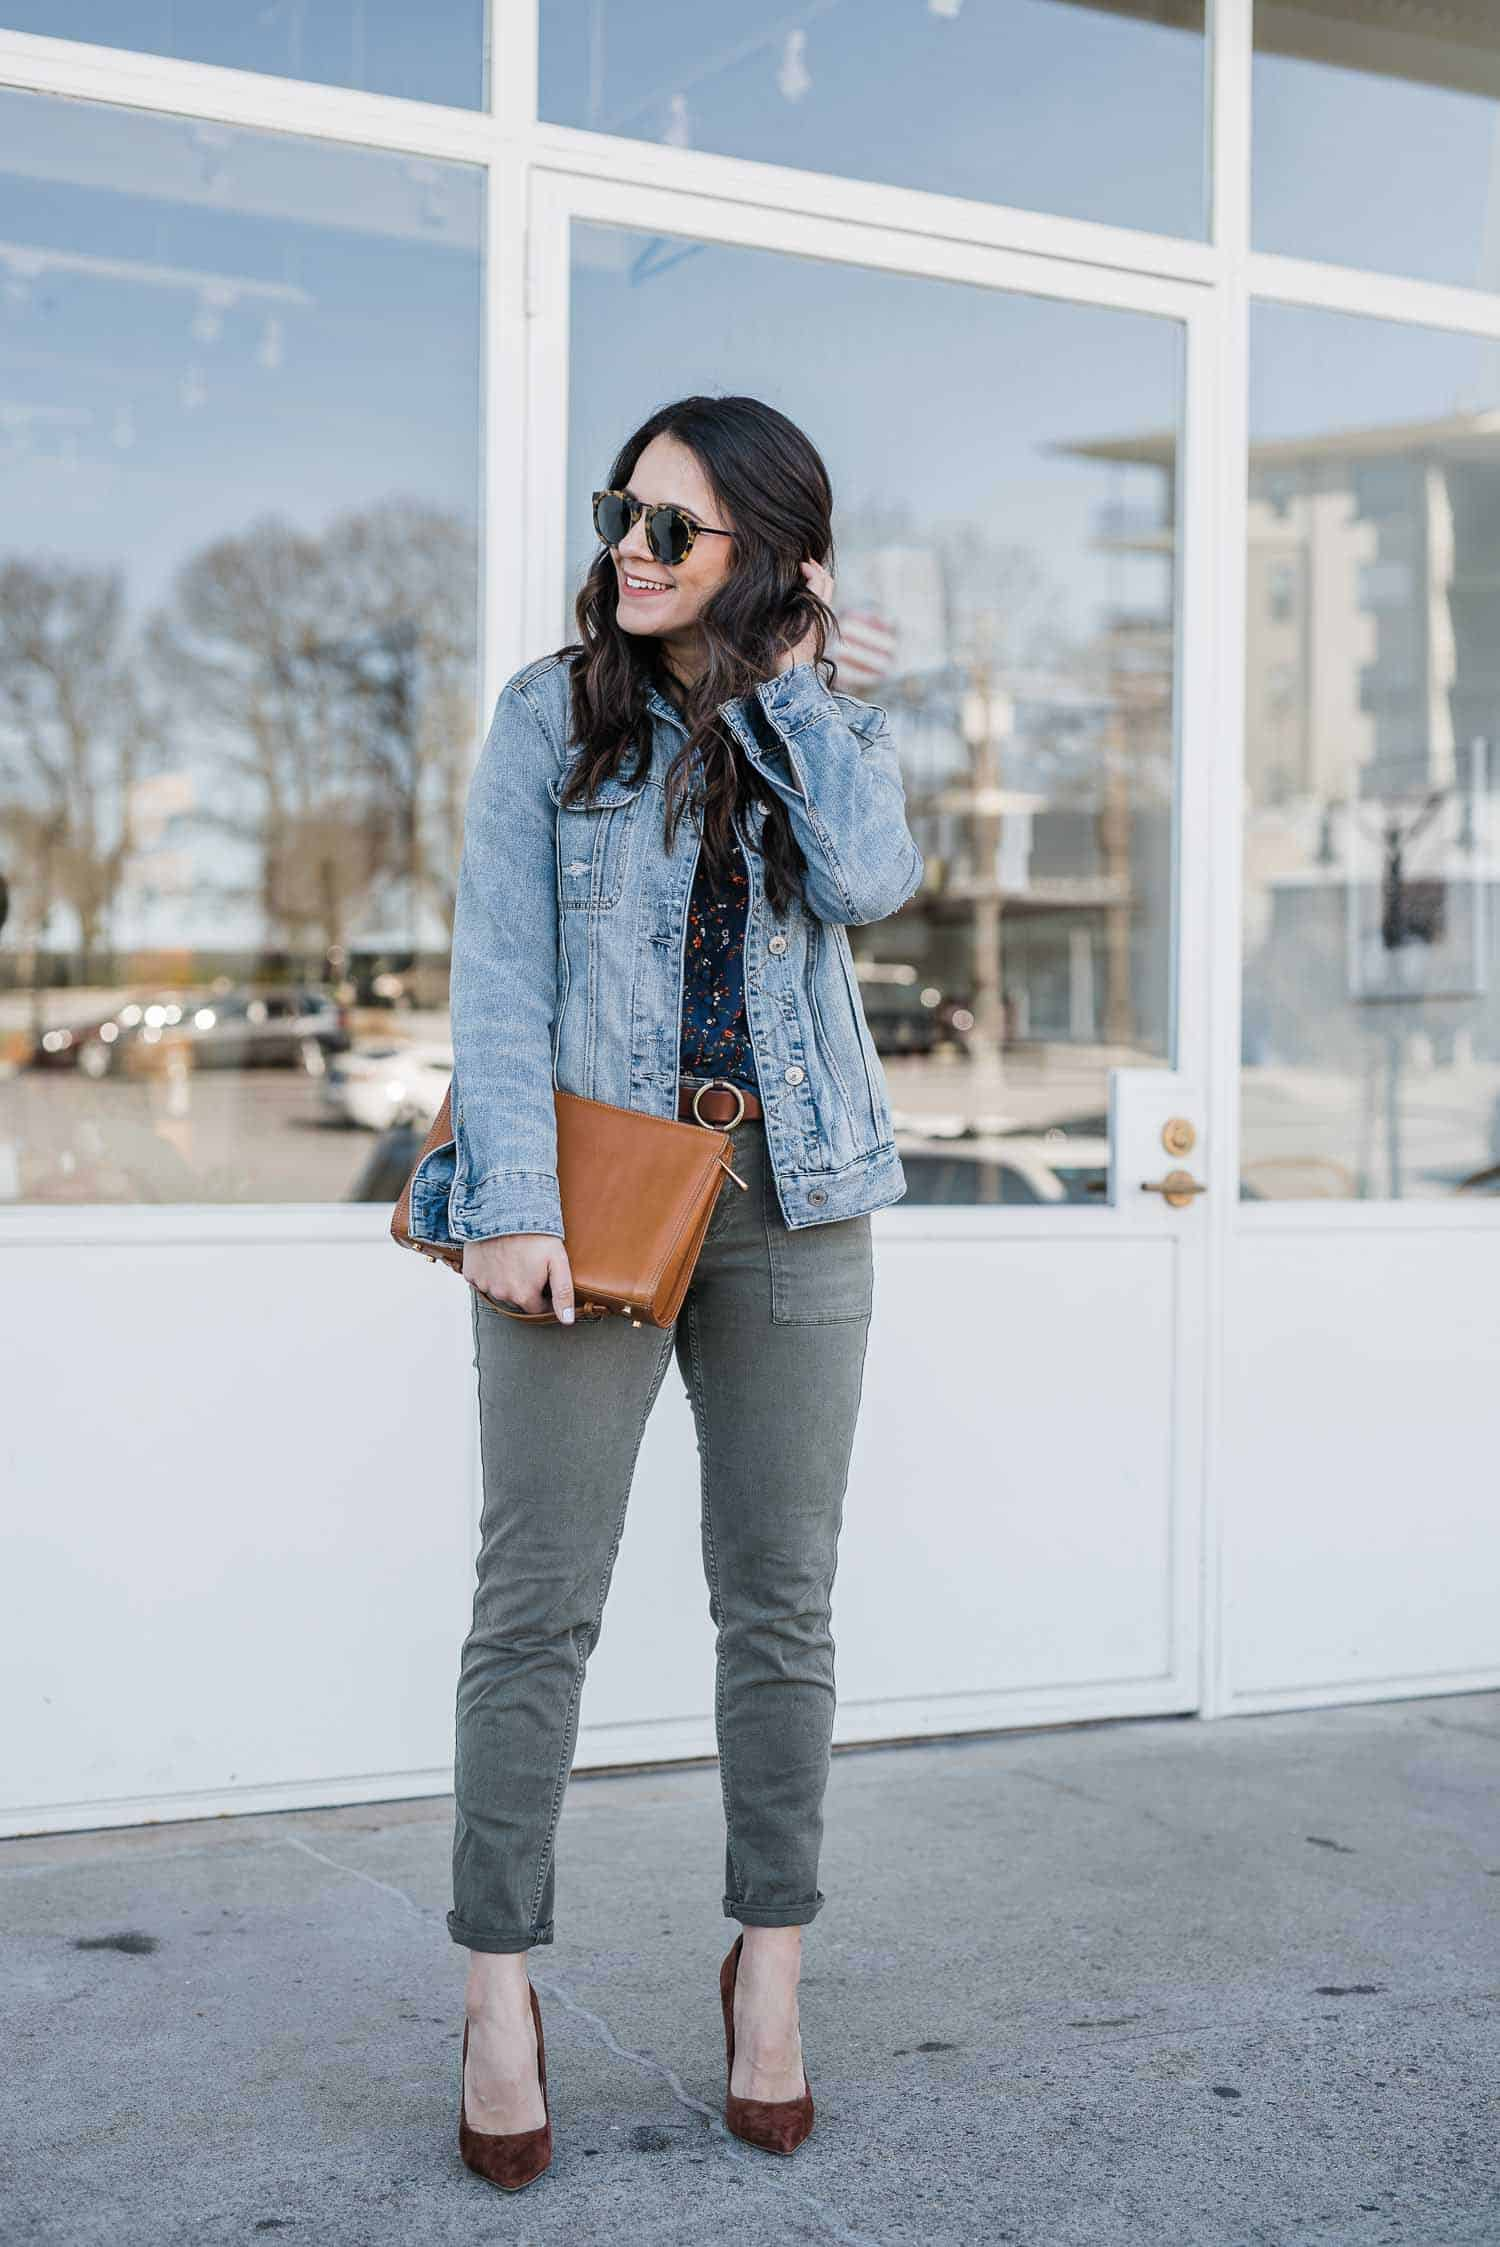 spring outfit ideas for cooler weather